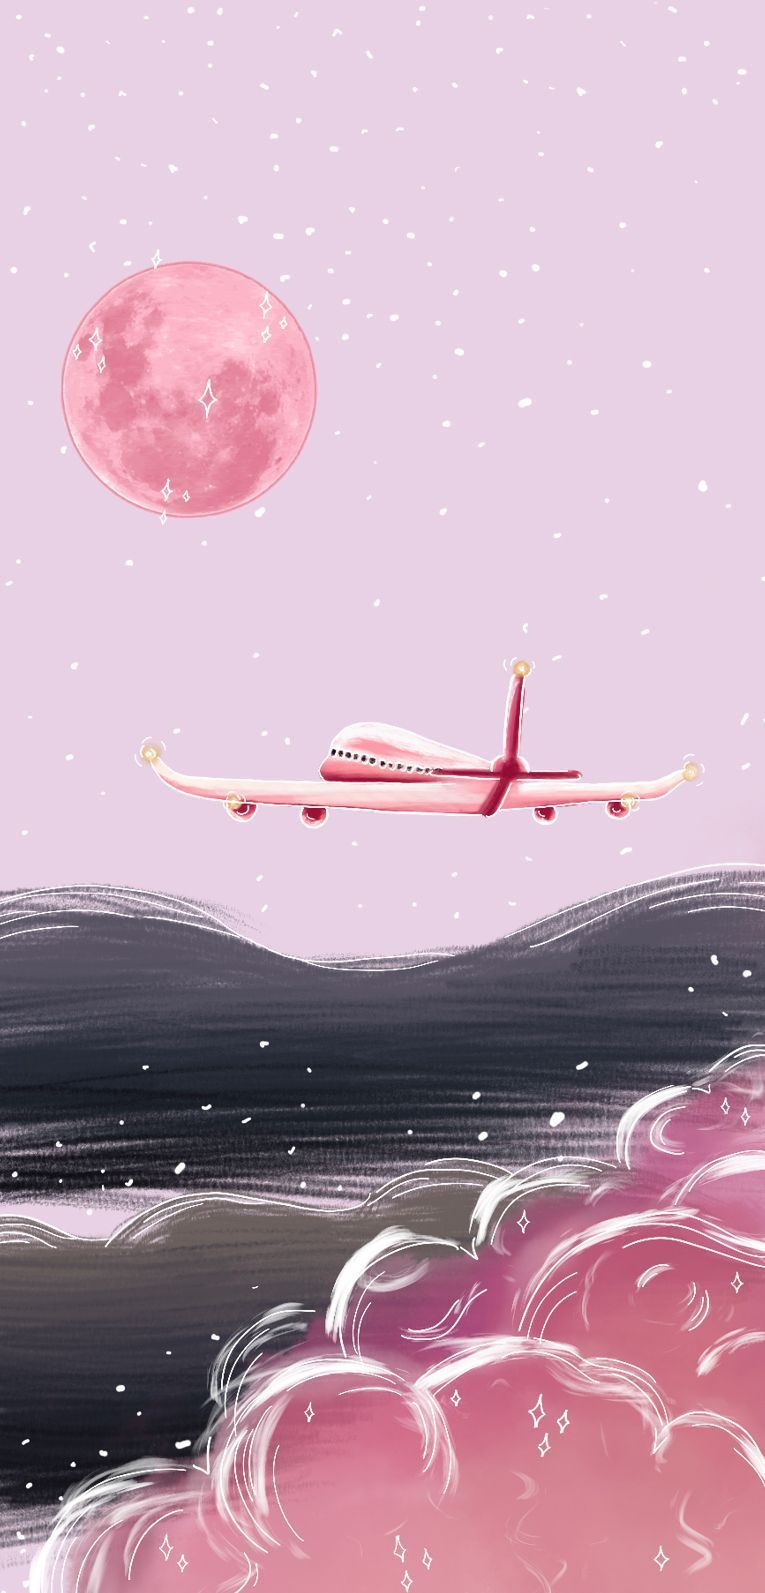 Dreamy Voyage In 2020 Aesthetic Iphone Wallpaper Pink Wallpaper Pretty Wallpapers